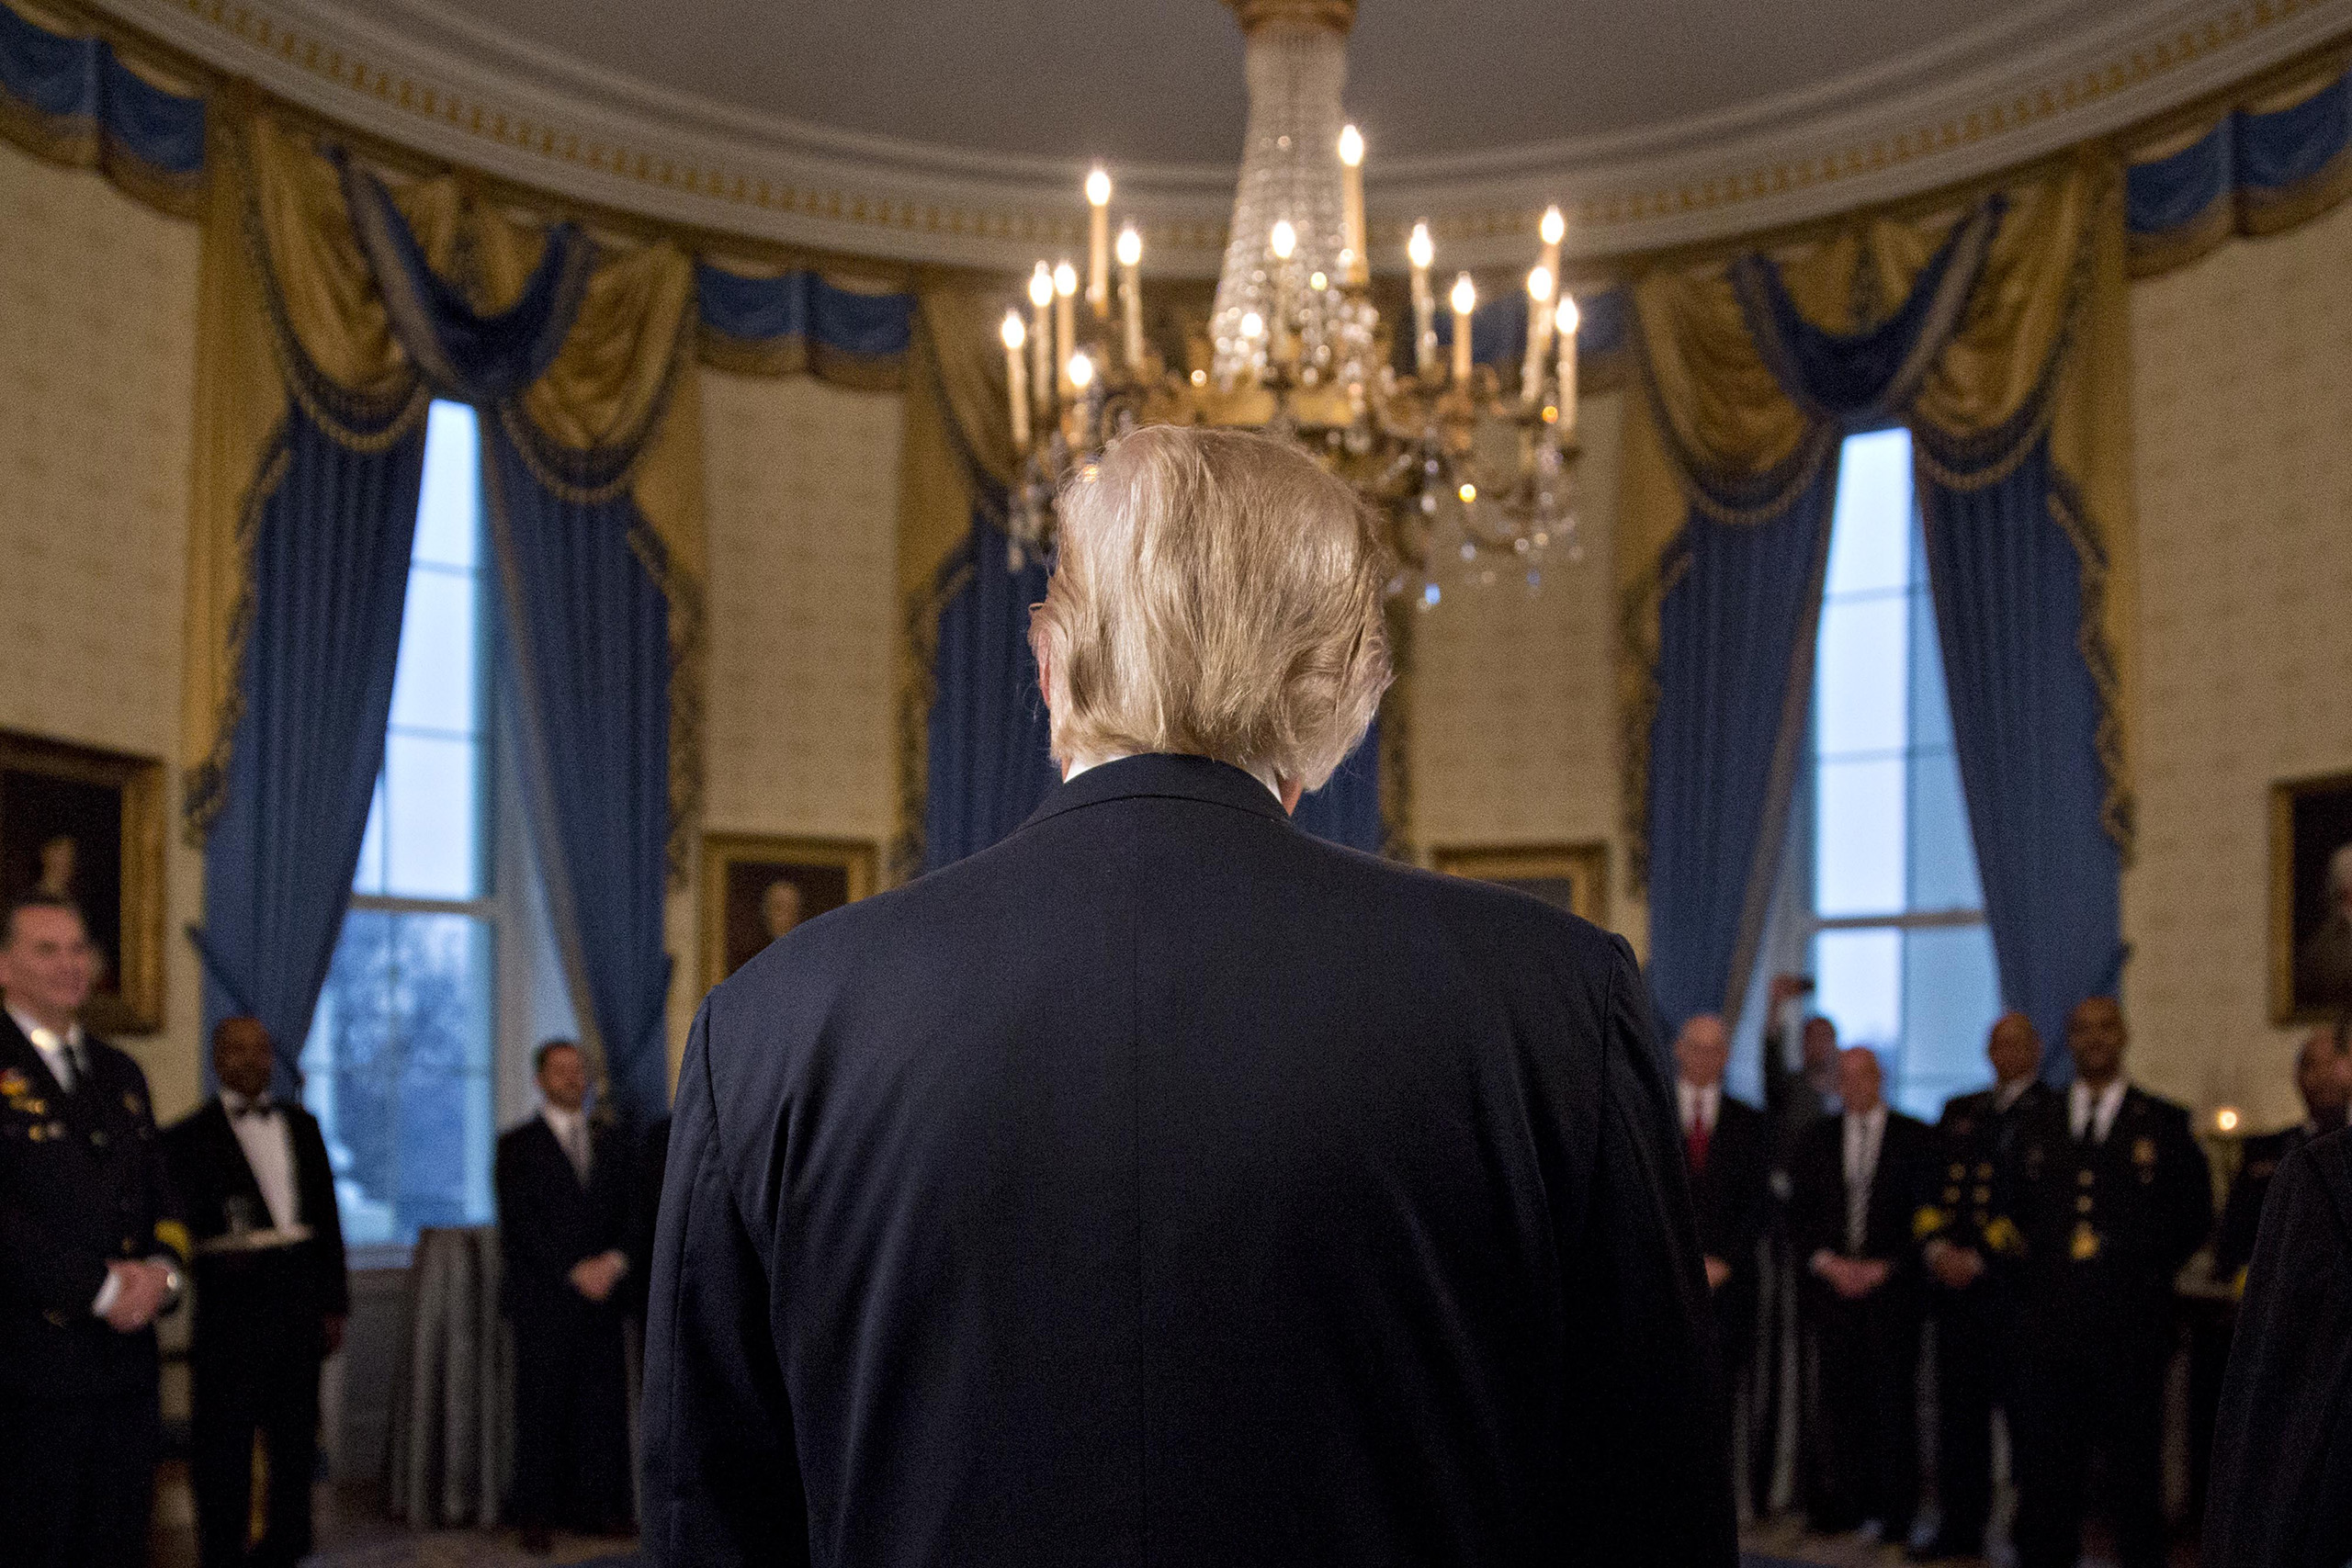 President Donald Trump speaks during an Inaugural Law Enforcement Officers and First Responders Reception in the Blue Room of the White House in Washington, on Jan. 22, 2017.